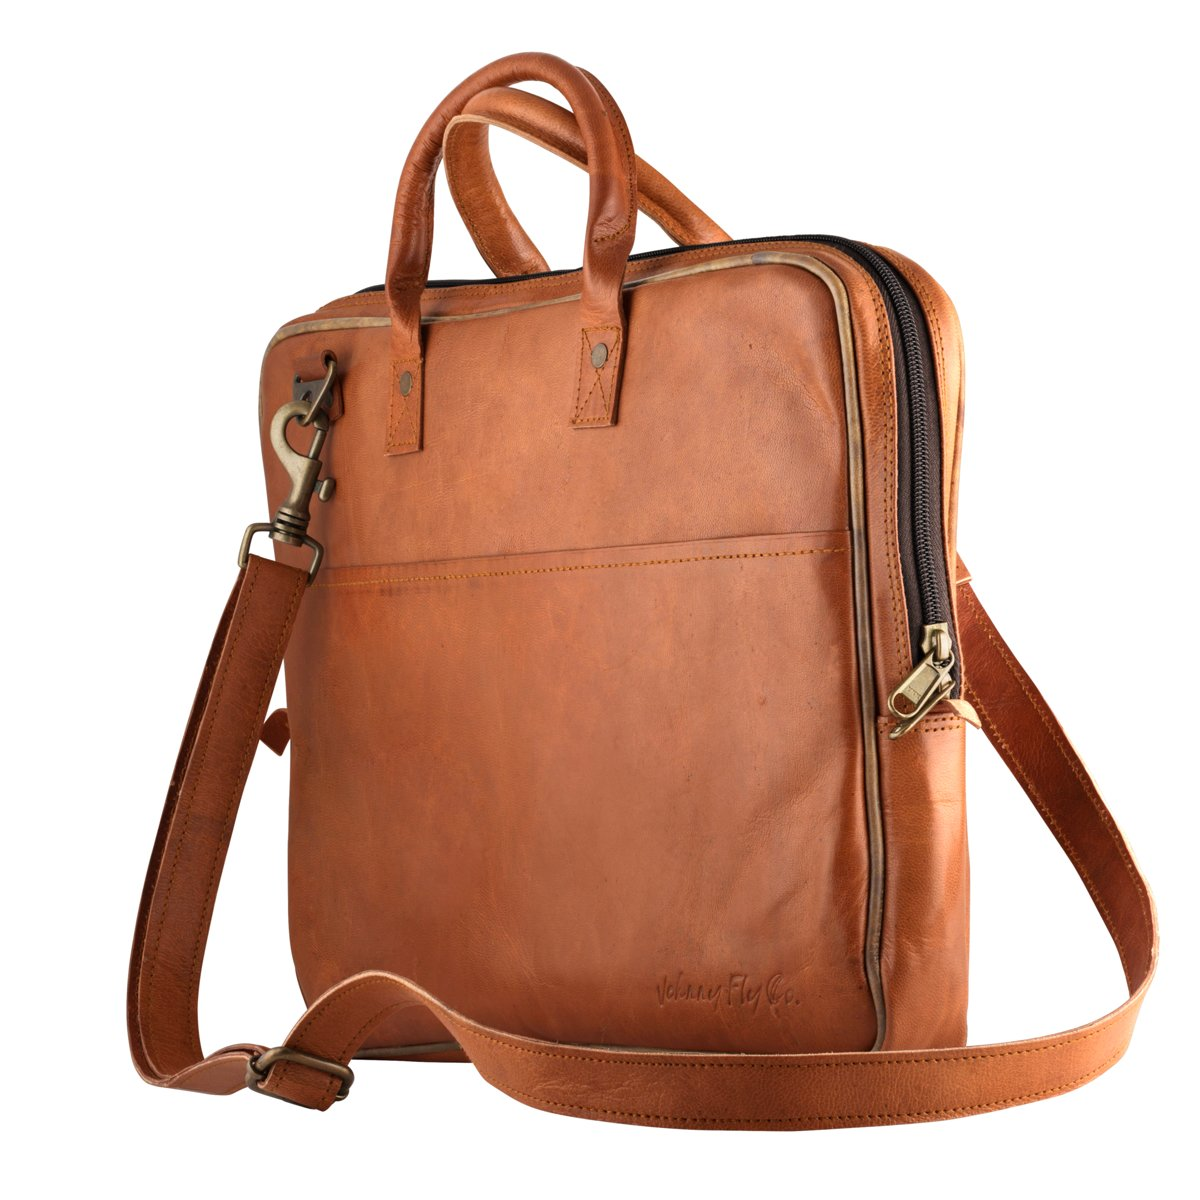 Johnny Fly Leren Laptop Tas - bruin - ecologisch